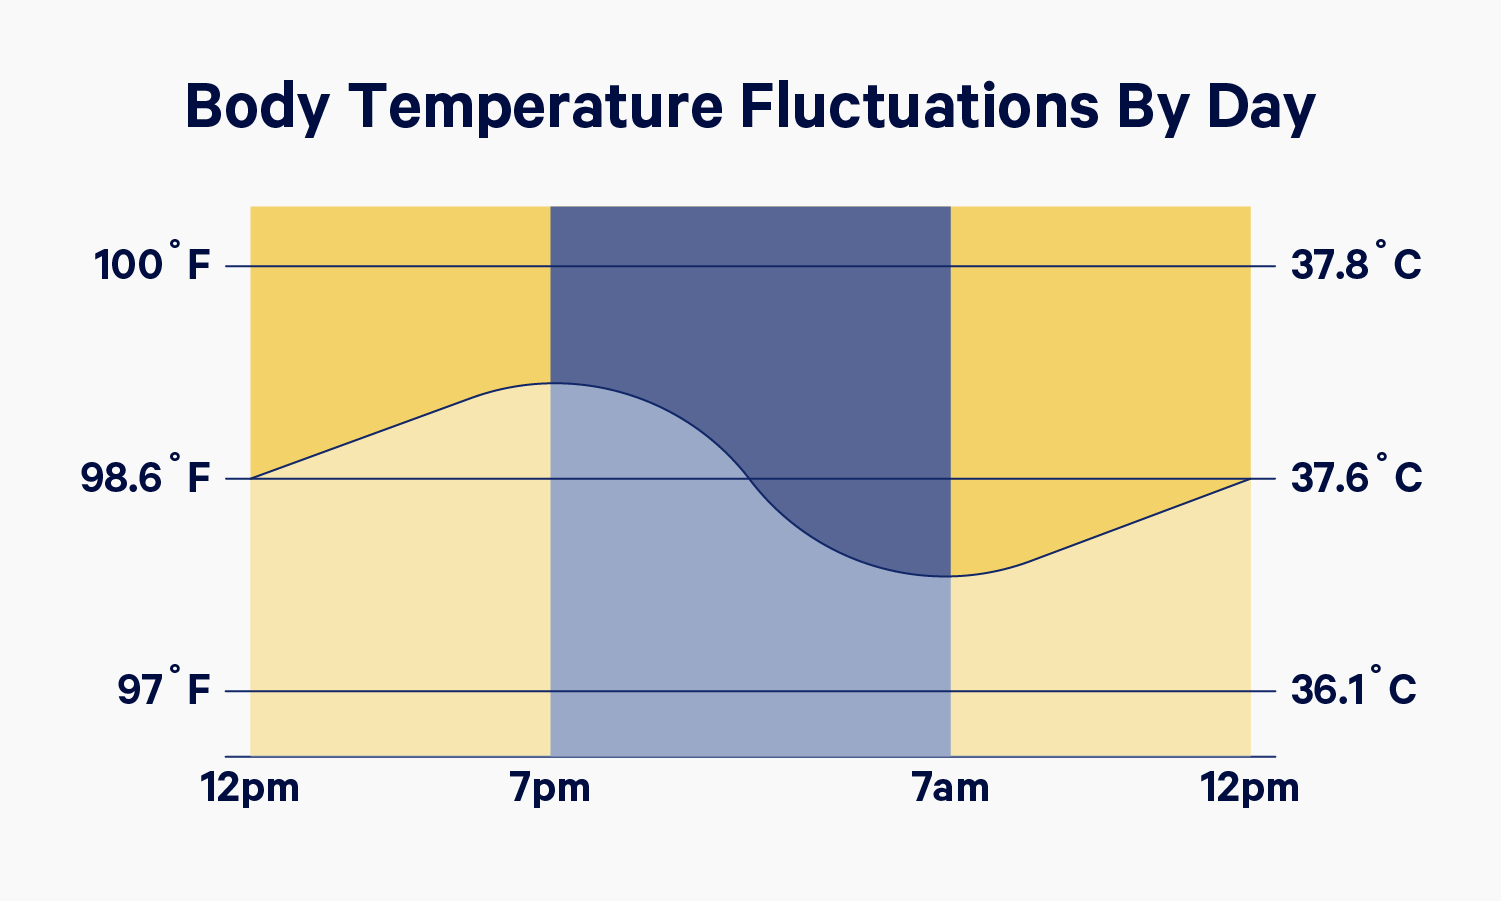 A chart showing body temperature fluctuations by day